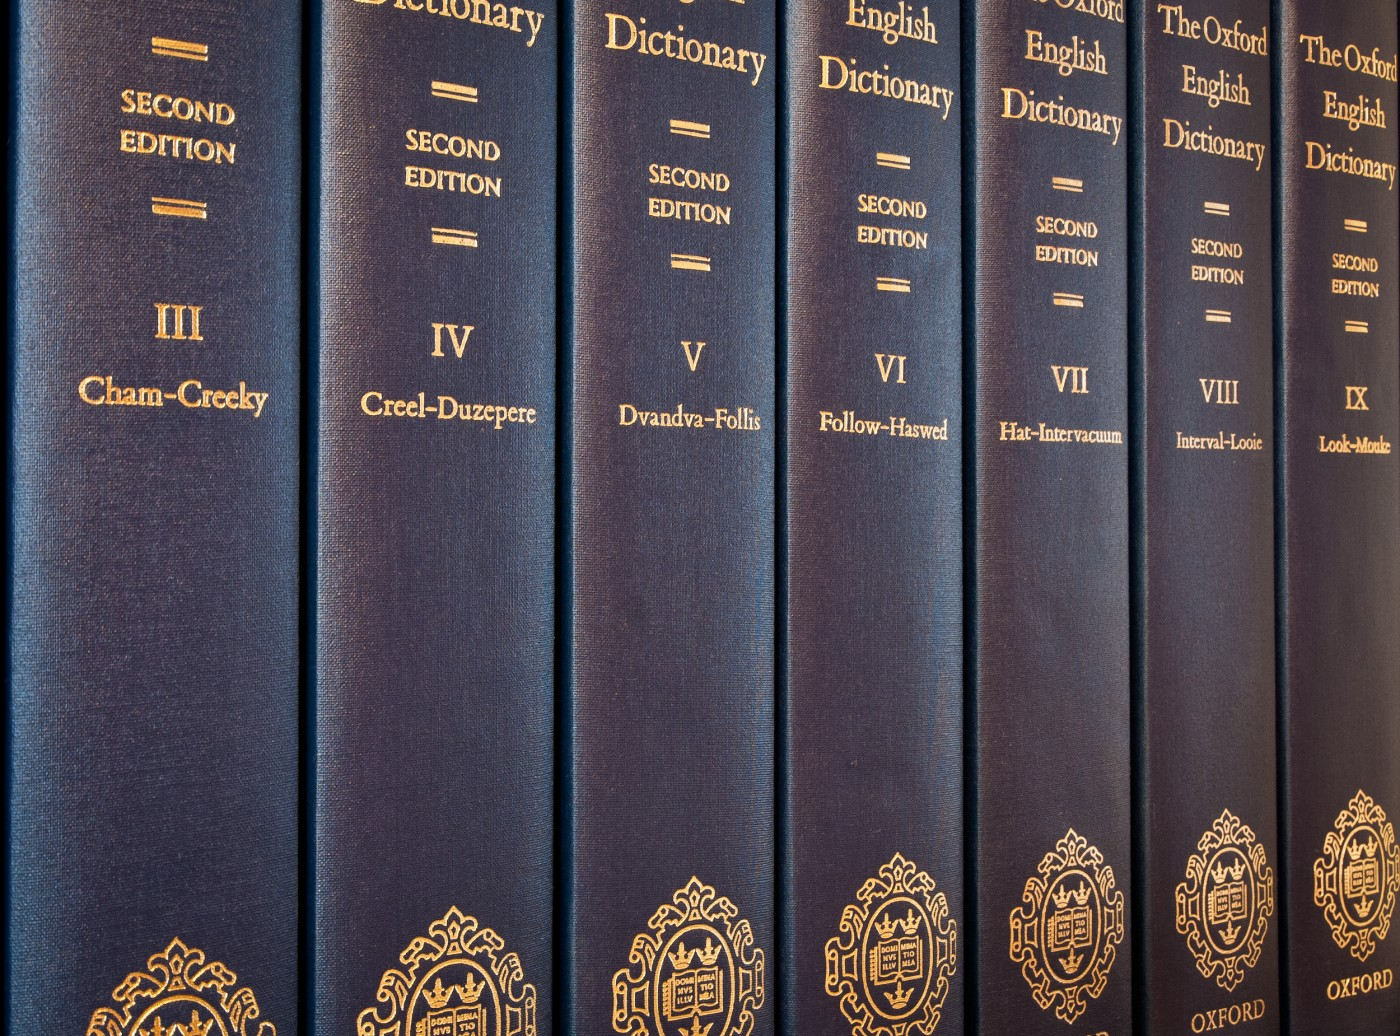 024 Oed2 Volumes Manual For Writers Of Researchs Theses And Dissertations Magnificent Research Papers A Amazon 9th Edition 8th 13 1400